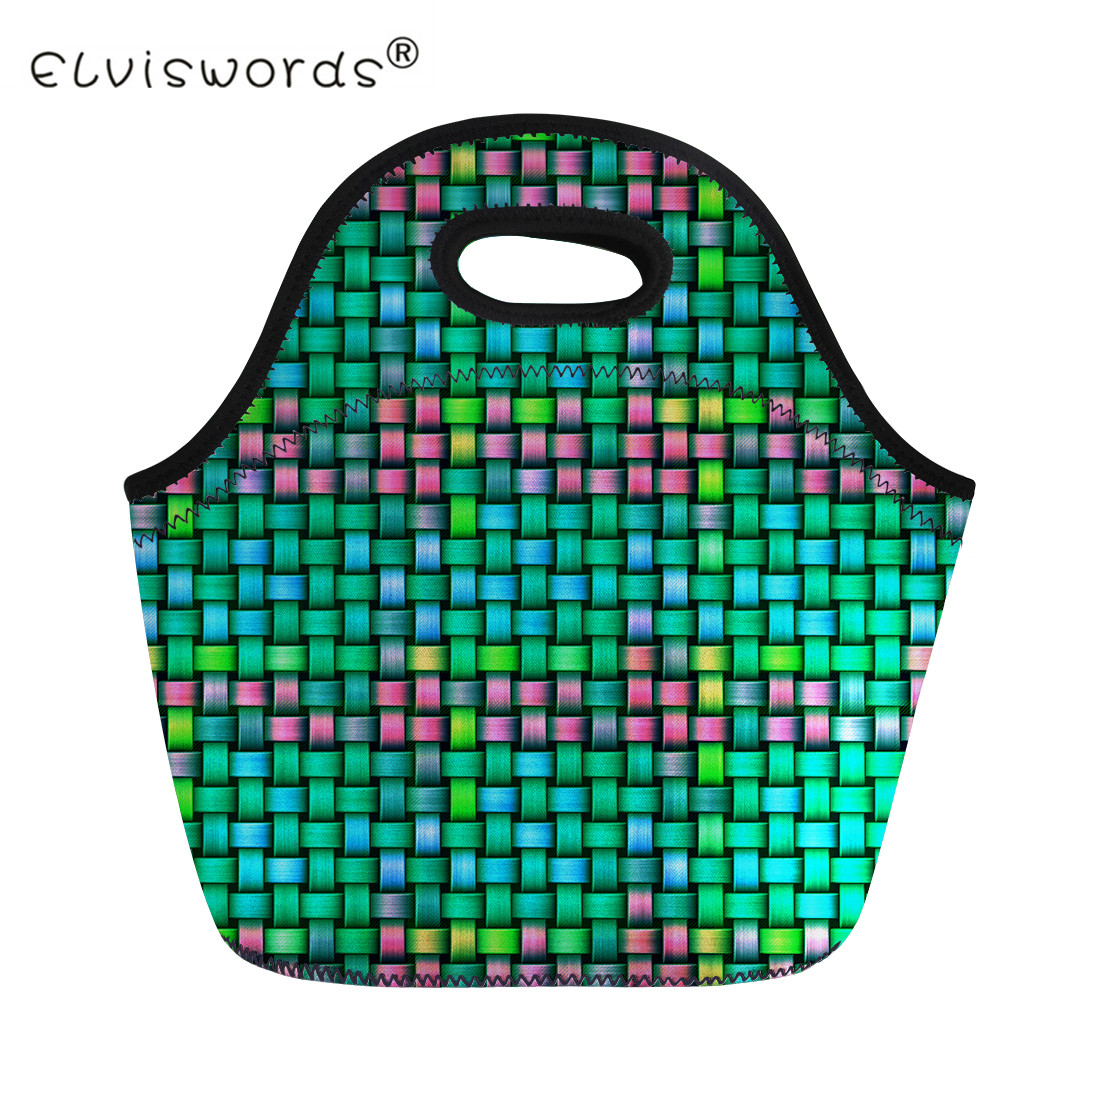 ELVISWORDS Insulated Lunch Bag Women Plaid Print Kids Children Portable Food Container Bag Girls Boys Thermal Picnic Lunch Bags